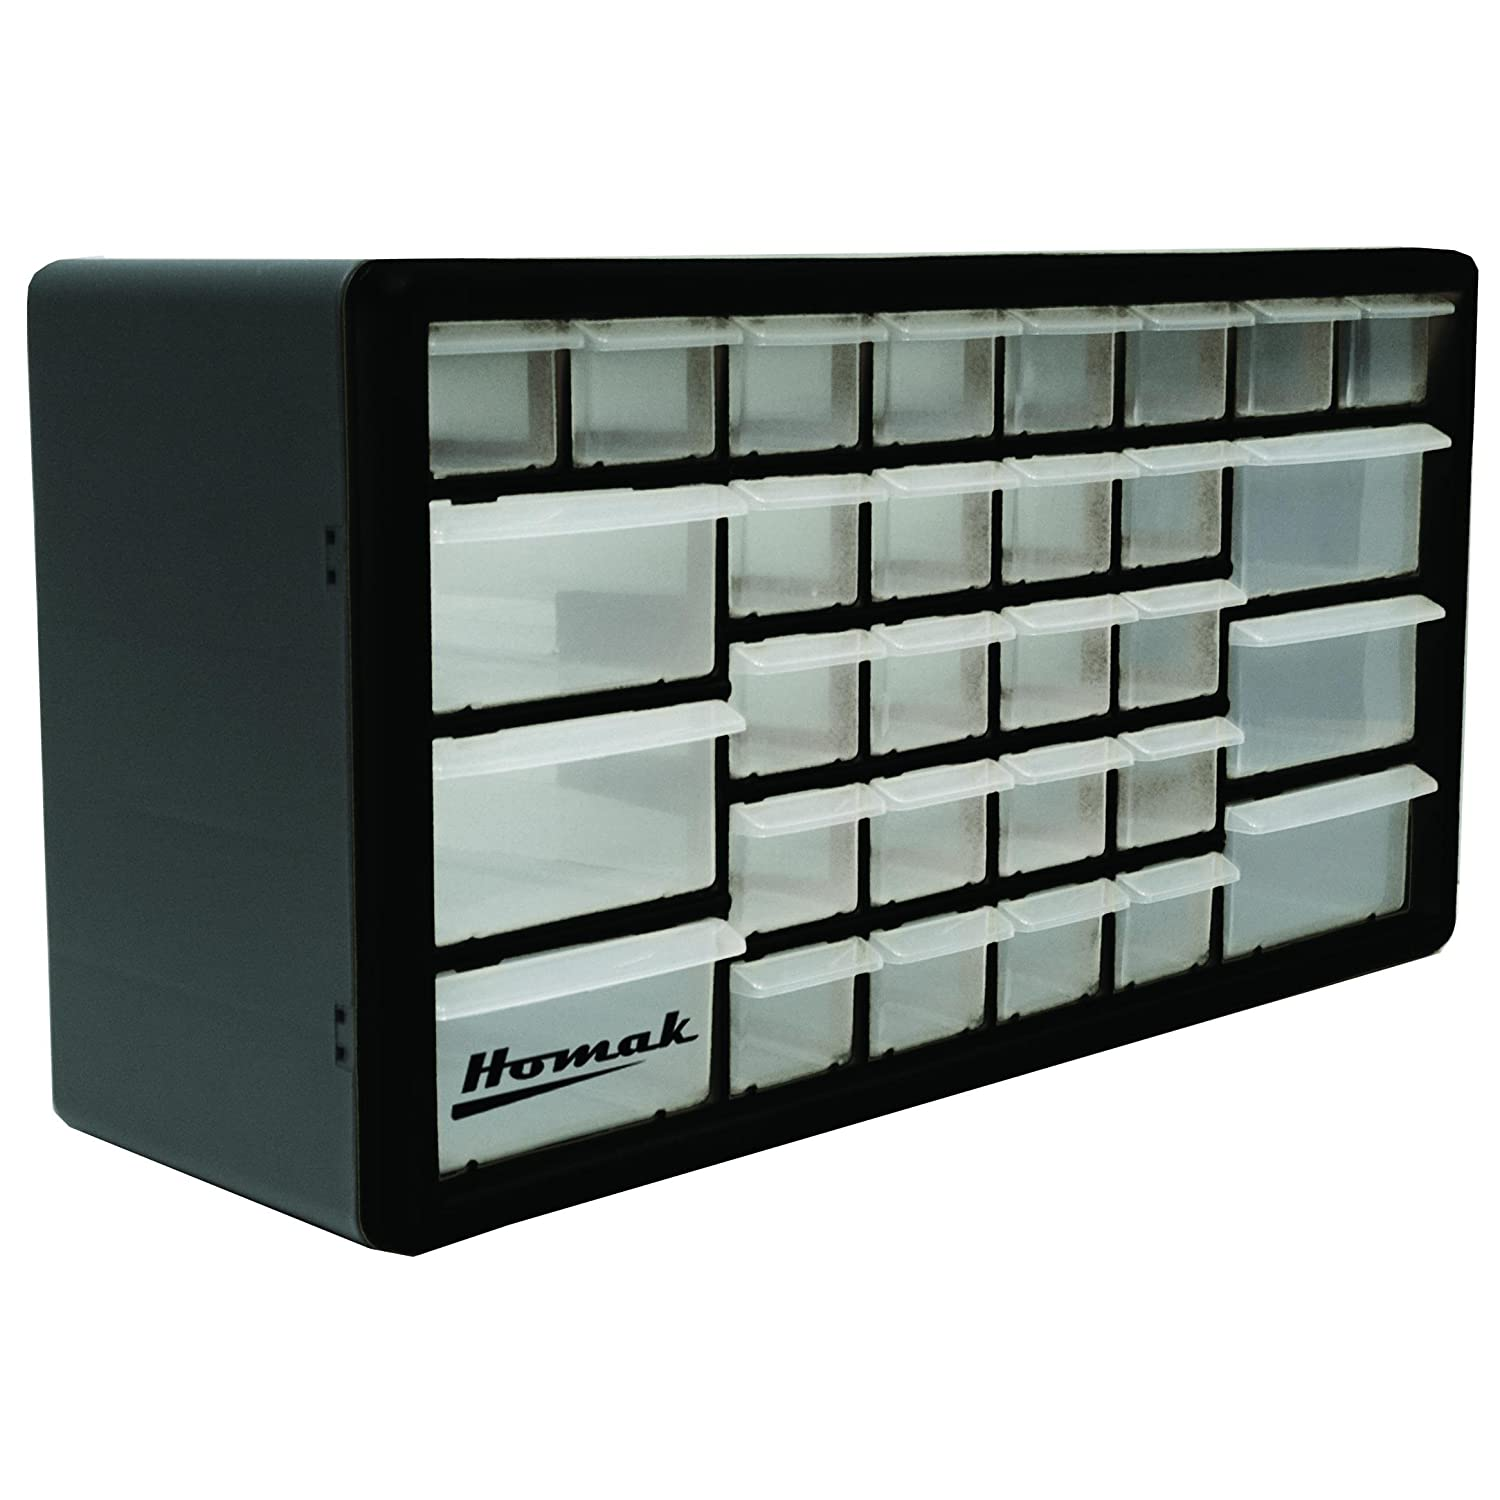 Homak 39 Drawer Parts Organizer Black HA Parts Bin